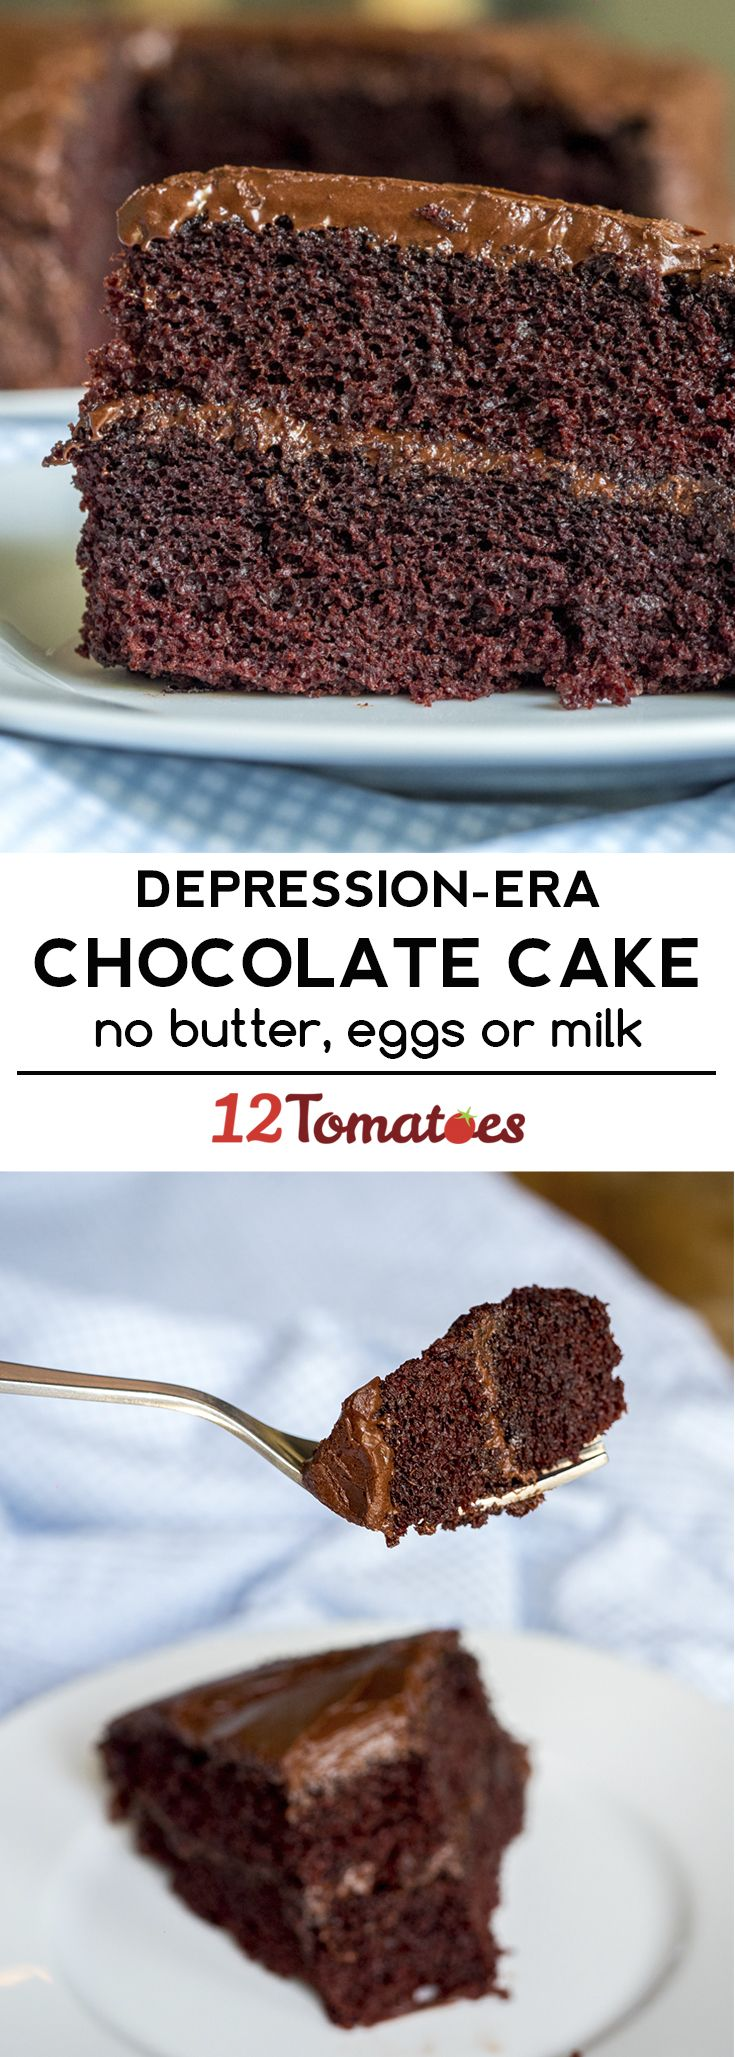 Depression Era Chocolate Cake